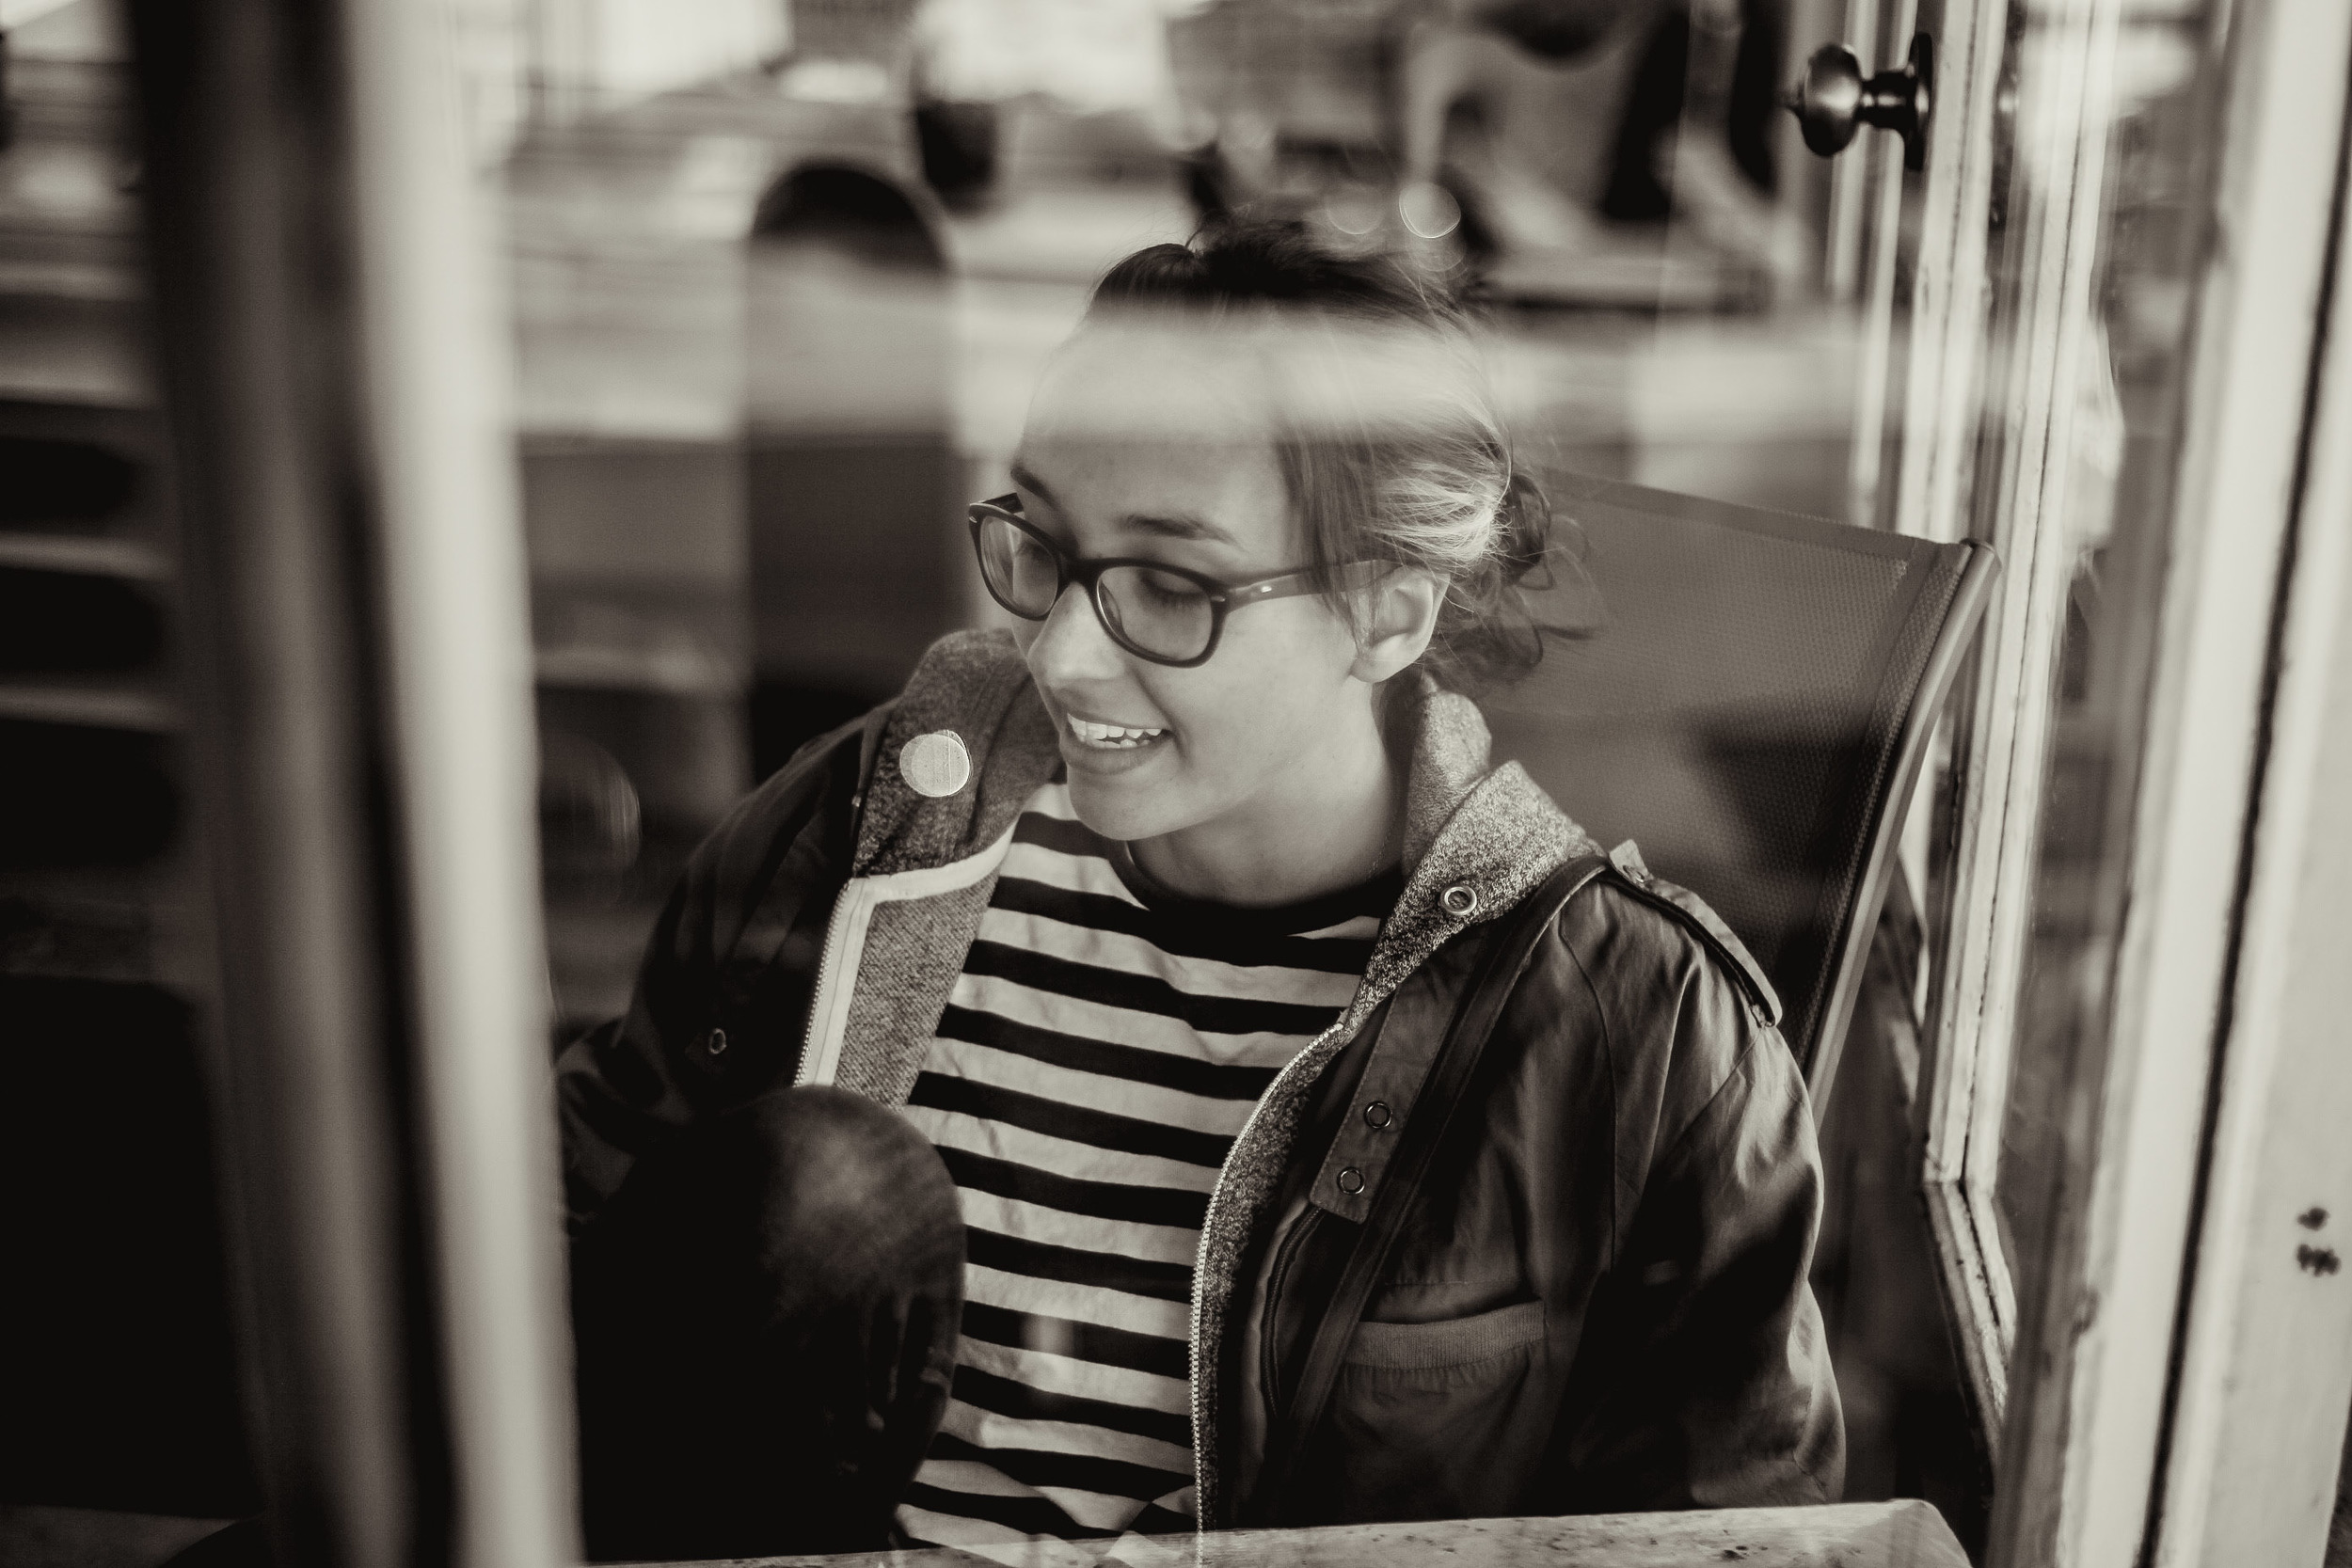 Joelle through the window | Daly City, CA